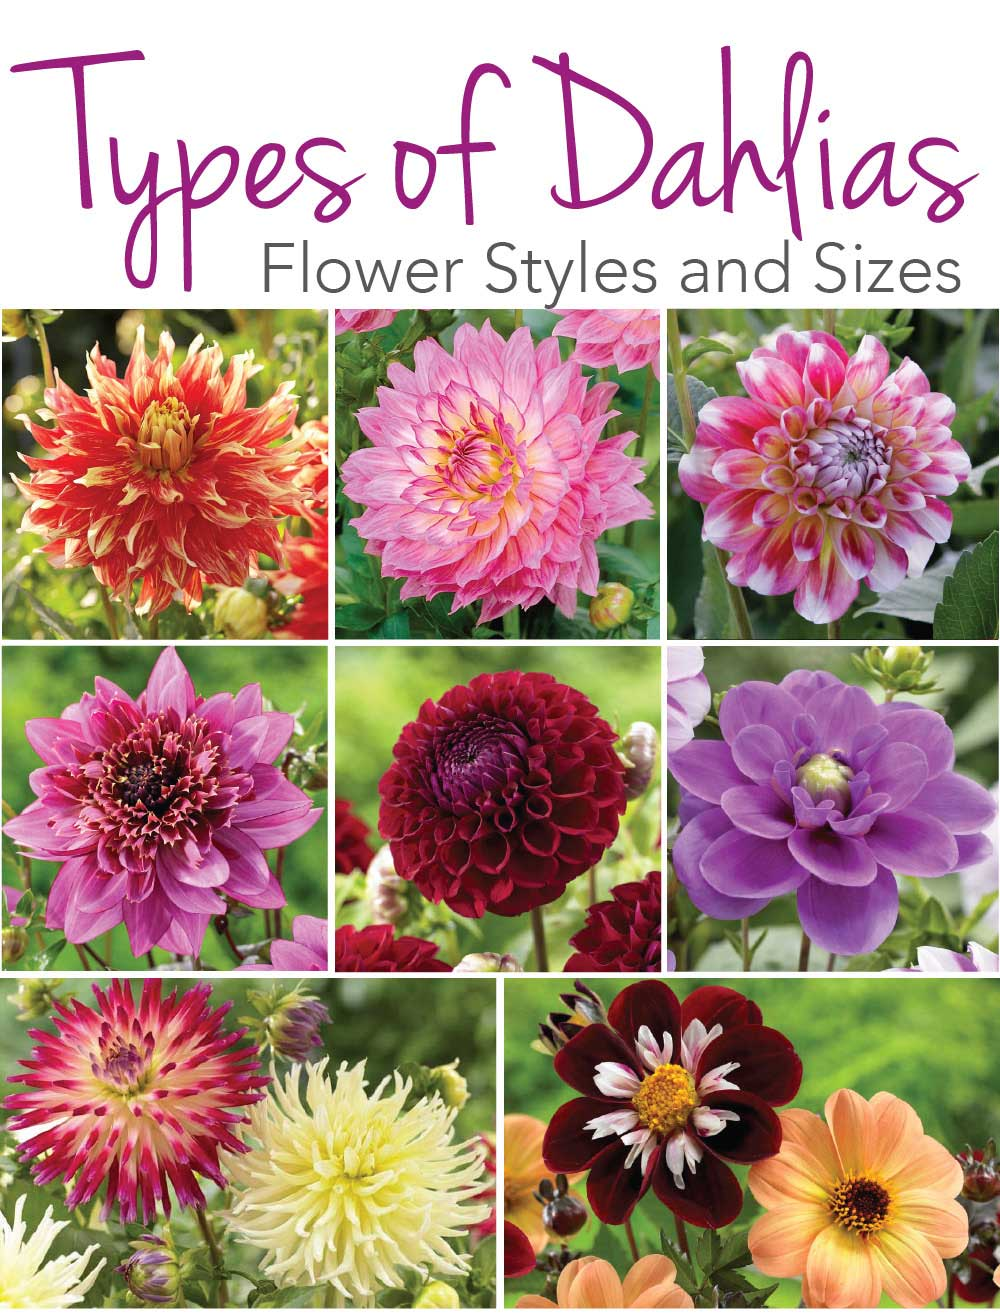 Know your dahlias flower styles and sizes longfield gardens izmirmasajfo